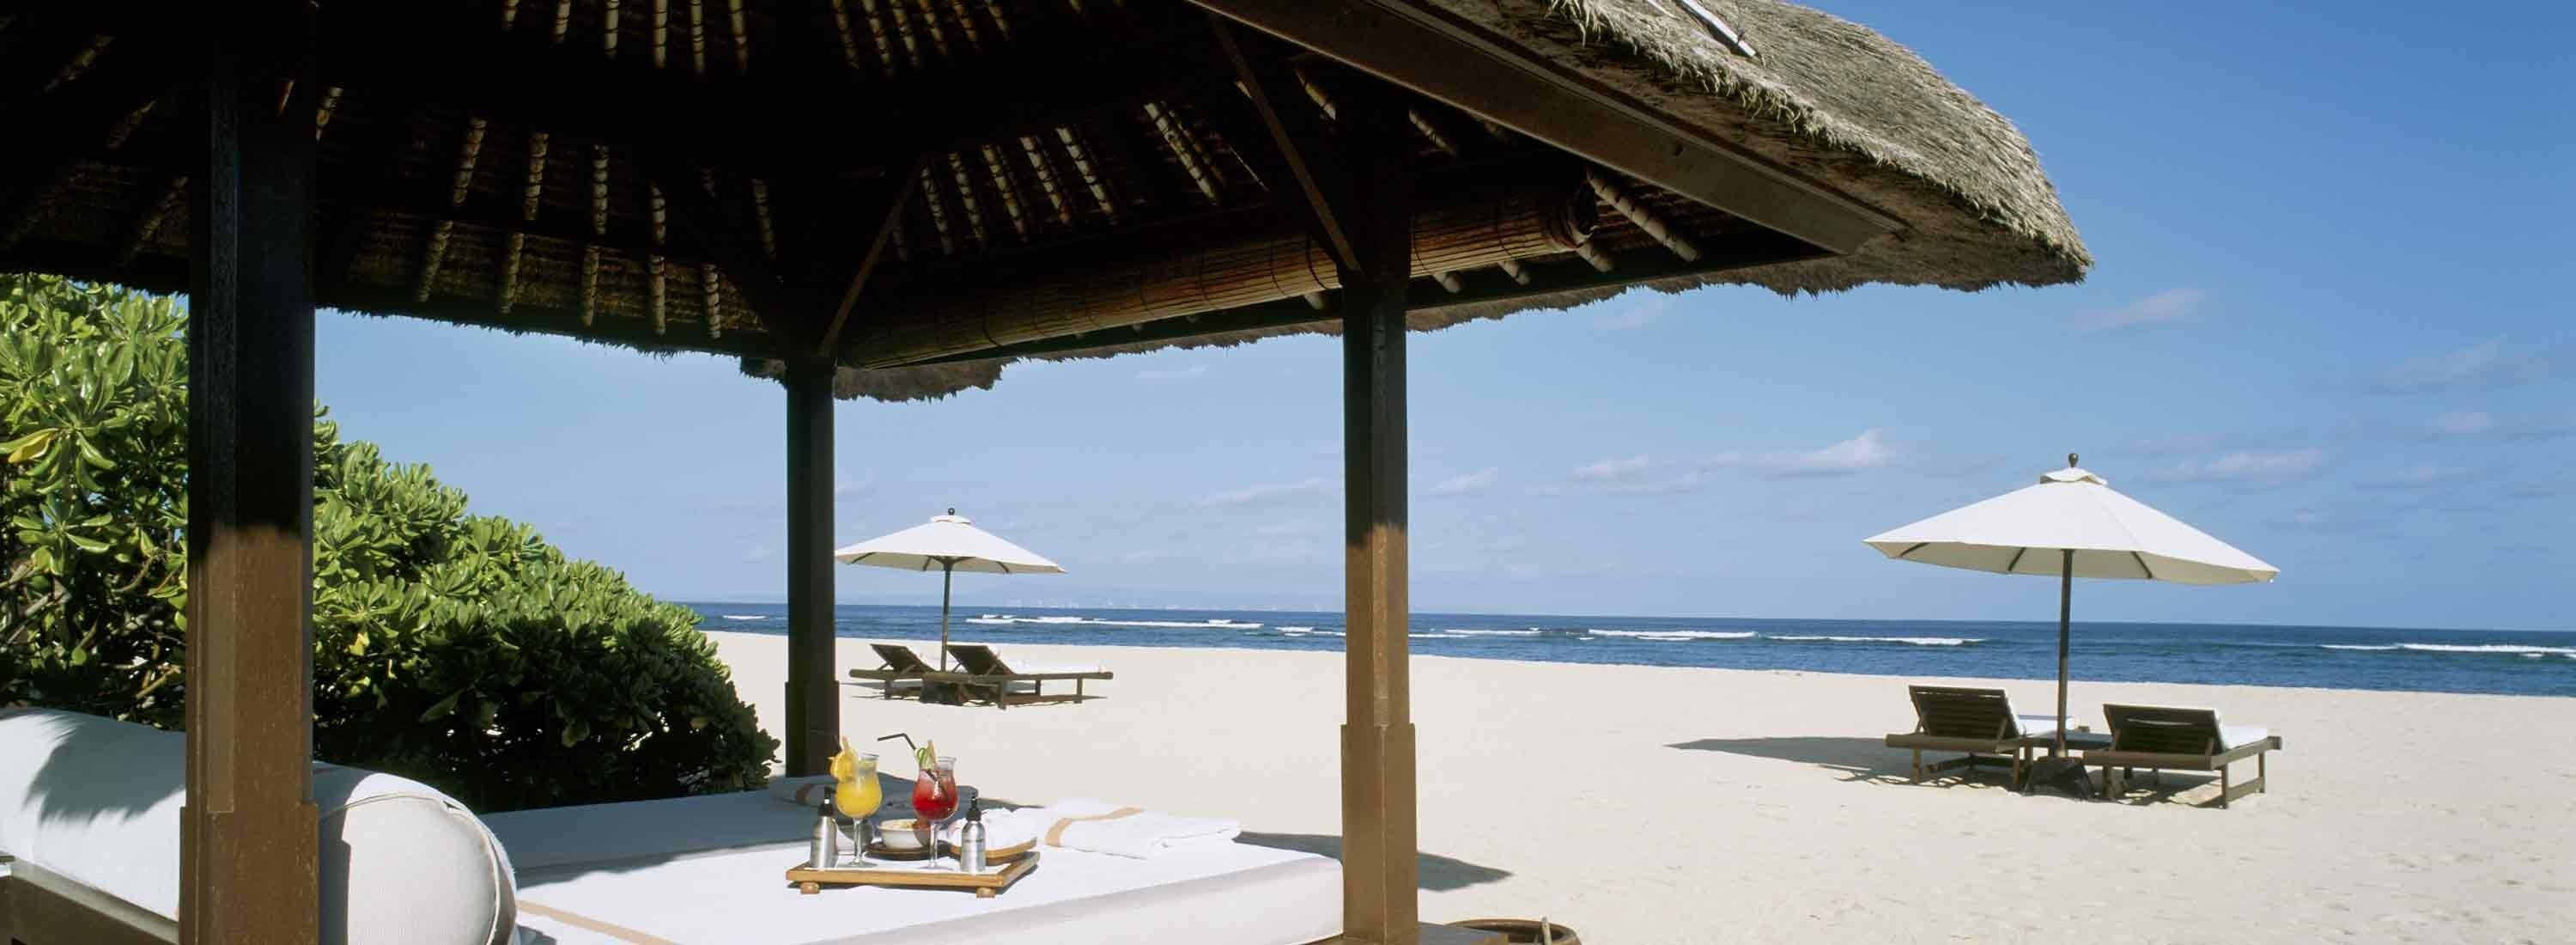 Top Luxury Hotels Bali Ultimate Jet Vacations